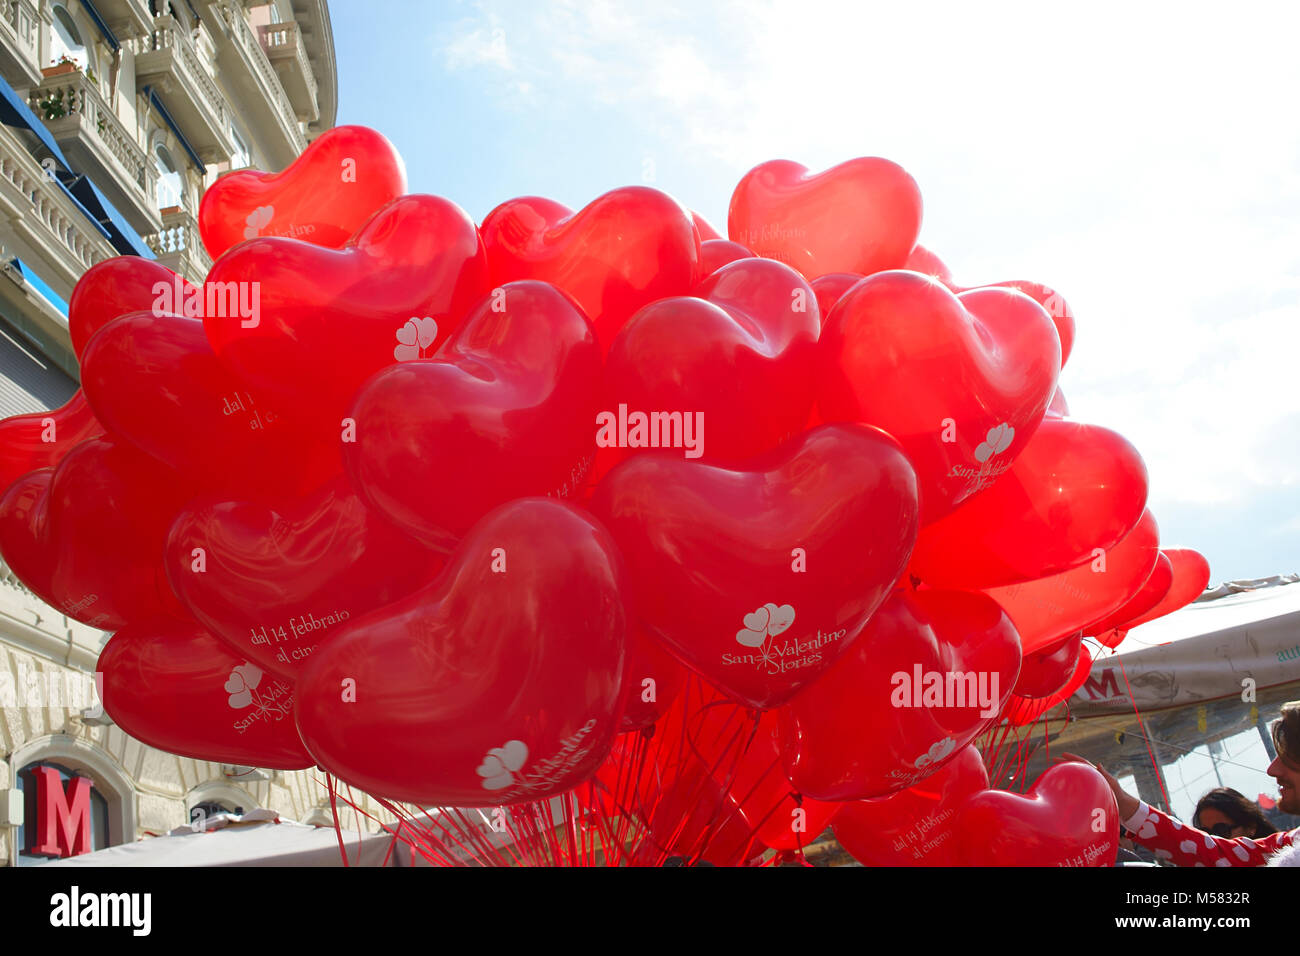 St. Valentine day in Naples, Italy - Stock Image